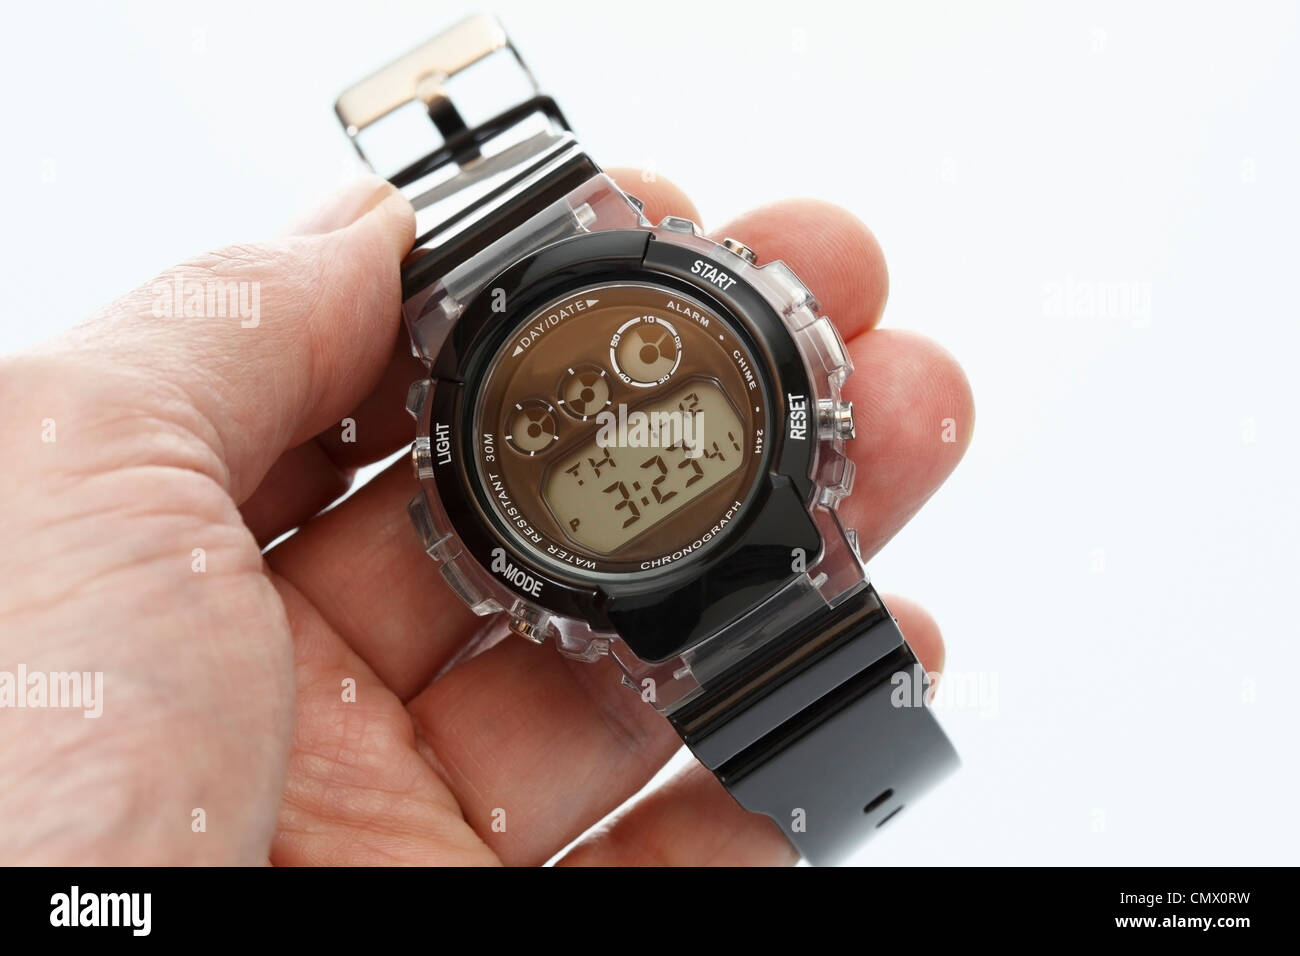 Human hand holding wrist watch, Close up Photo Stock